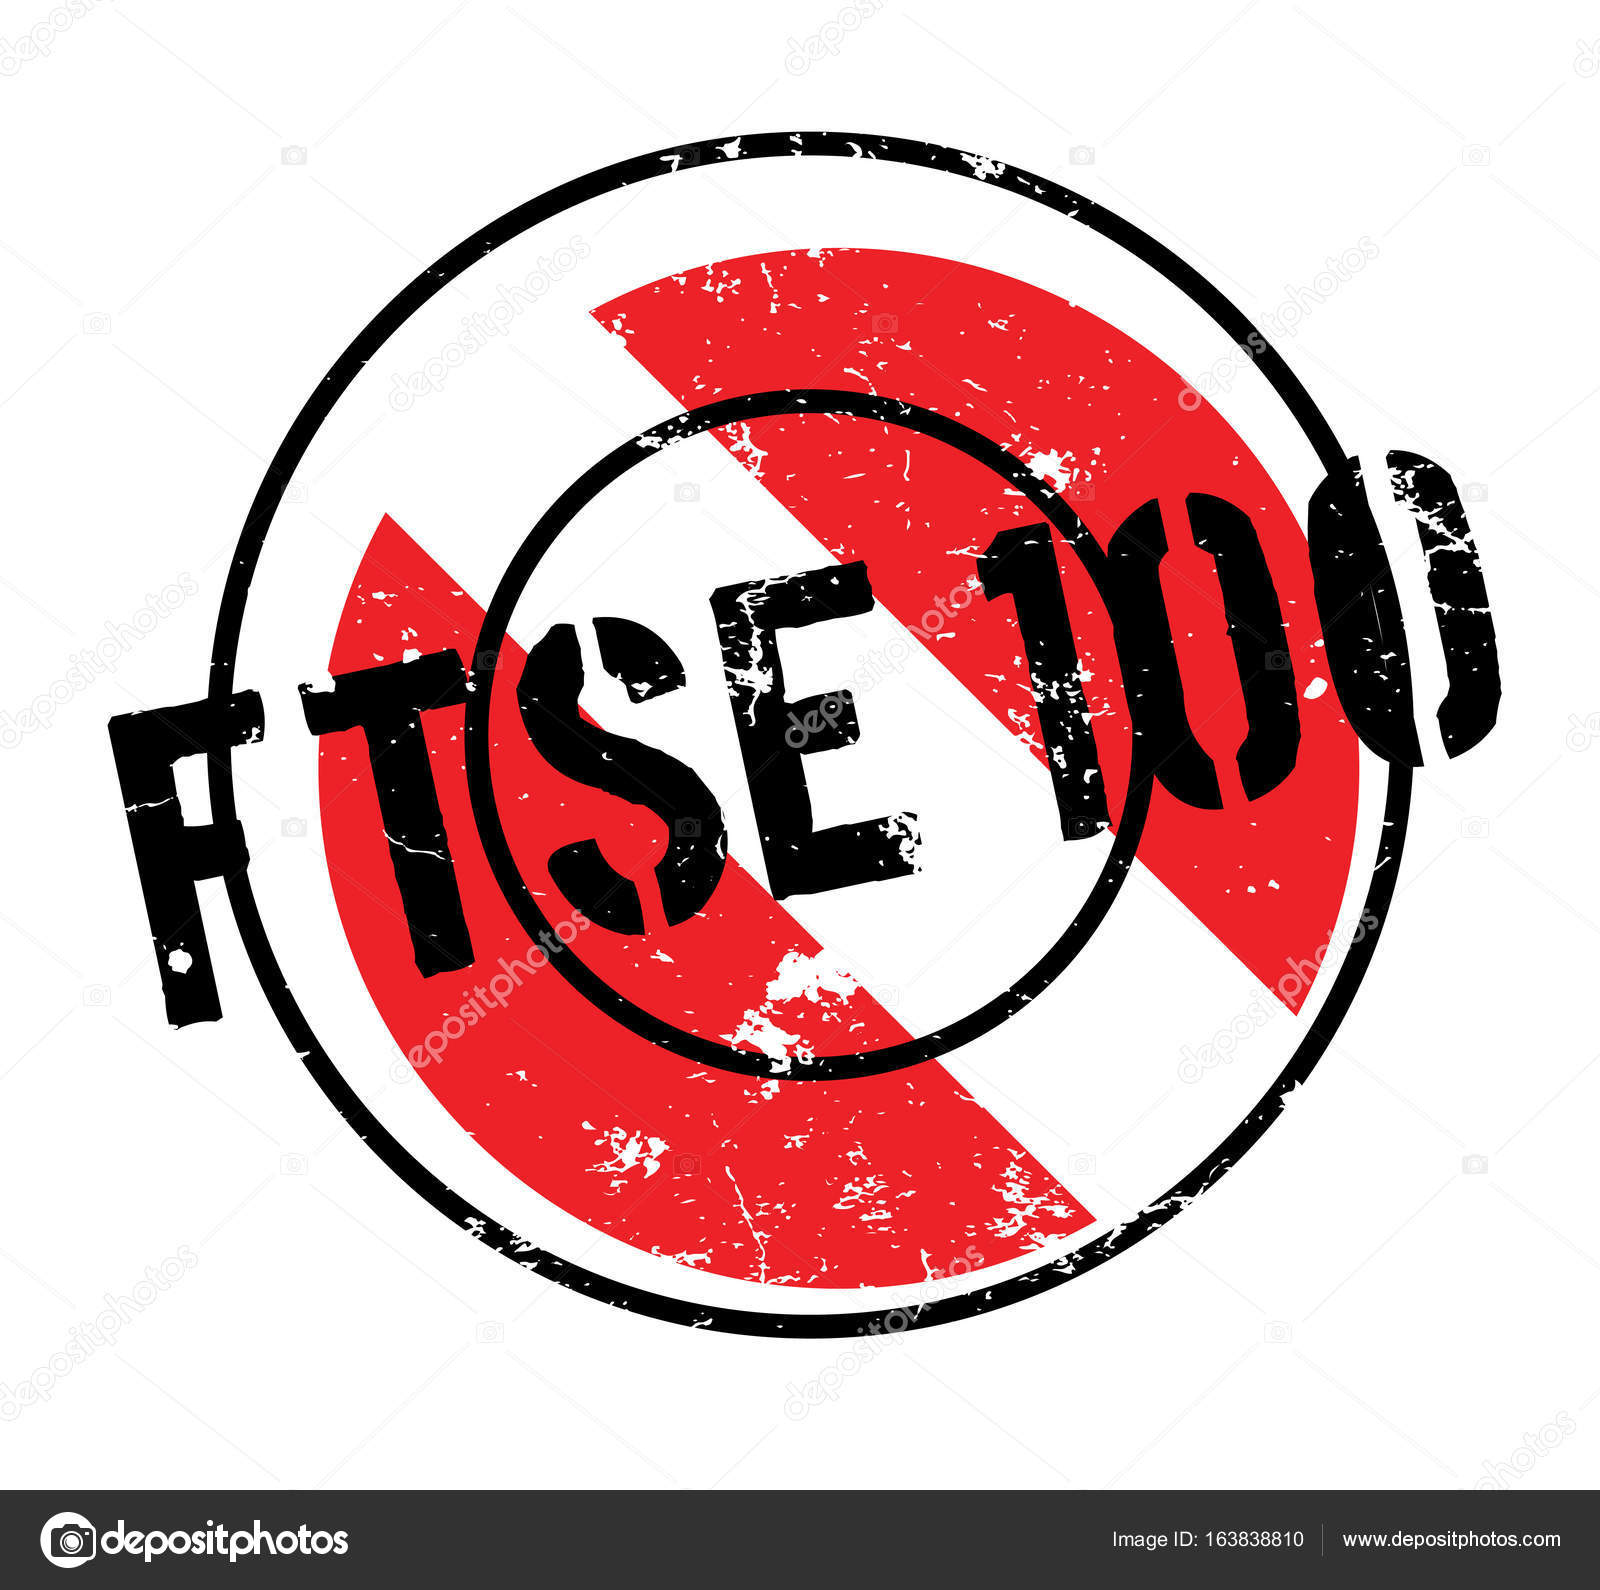 Ftse 100 symbol choice image symbol and sign ideas ftse 100 rubber stamp stock vector lkeskinen0 163838810 ftse 100 rubber stamp stock vector buycottarizona choice biocorpaavc Gallery